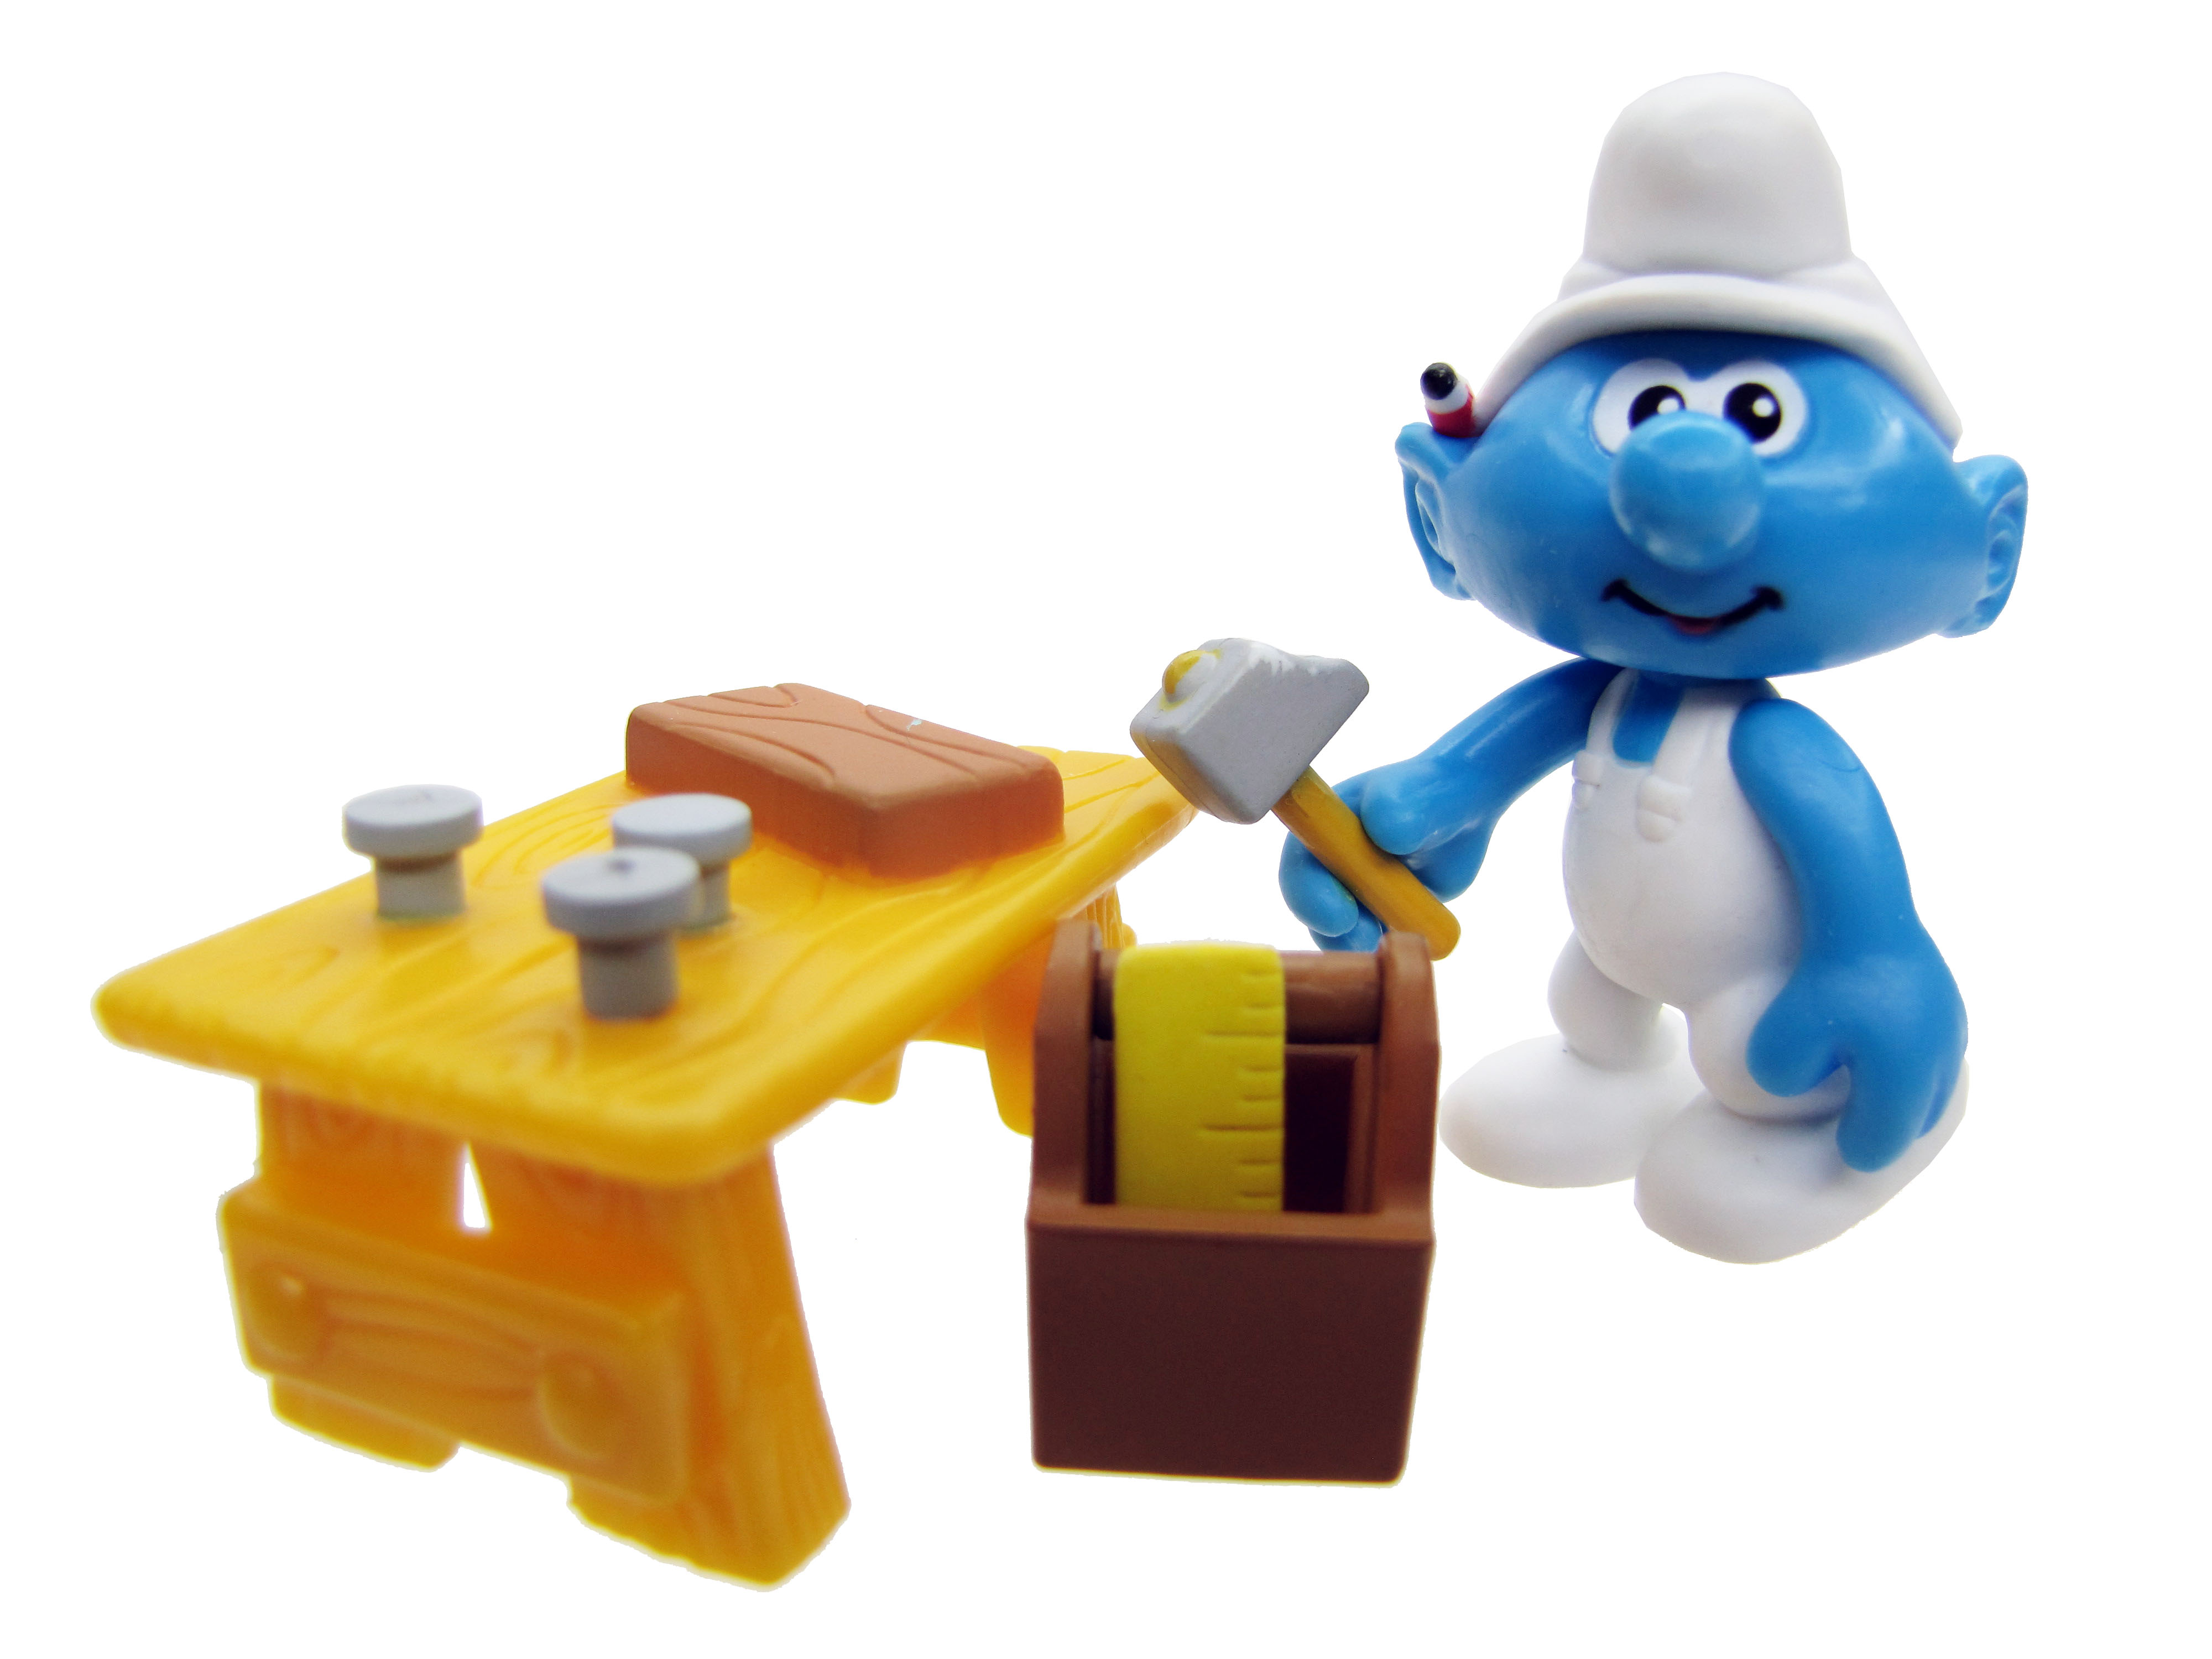 2008 The Smurfs Series 1: Handy Smurf with Tool Bench Complete